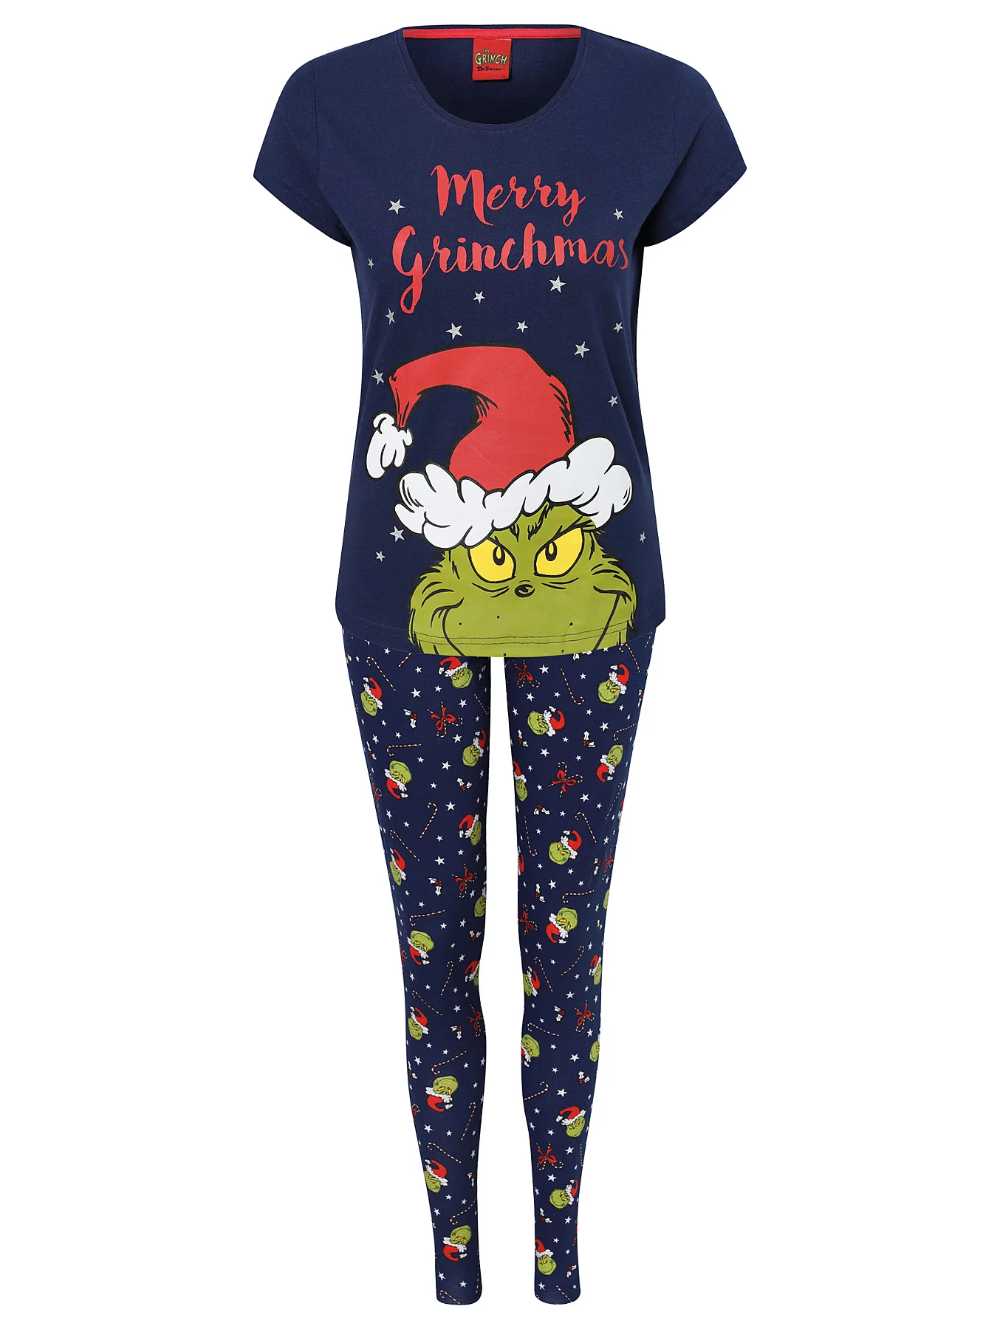 Dr. Seuss' The Grinch Christmas Pyjamas Women